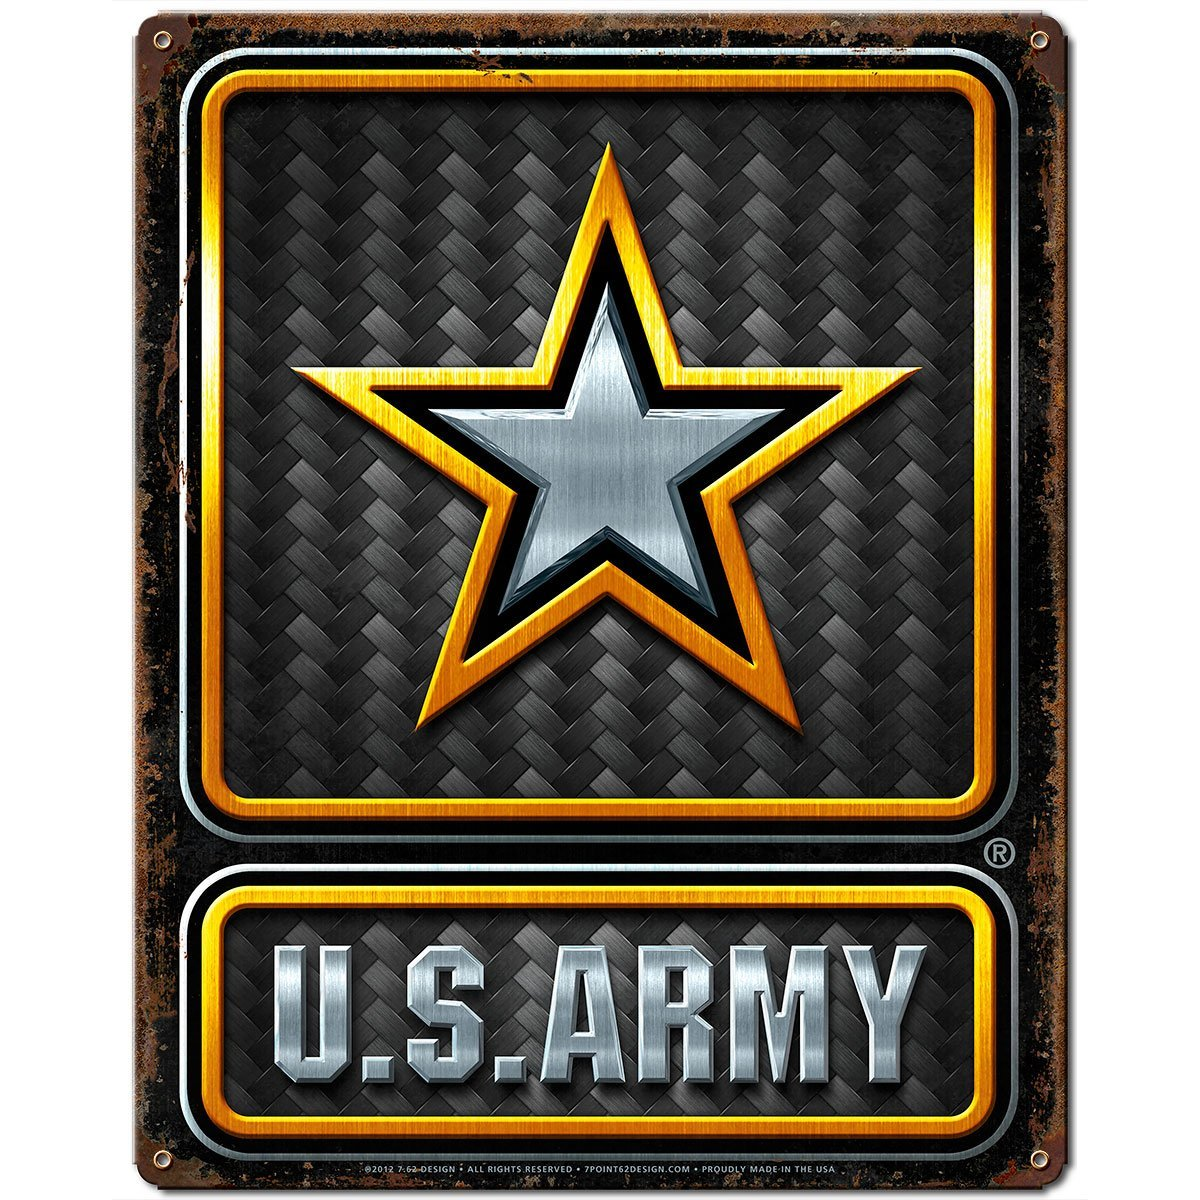 Us Army Carbon Fiber Vintage Metal Sign. Pikachu Signs. Buddhist Signs. Green Rectangle Signs Of Stroke. Crop Circle Signs Of Stroke. Khmer Signs. Greek Mythology Signs Of Stroke. 1471 2334 Signs. Side Signs